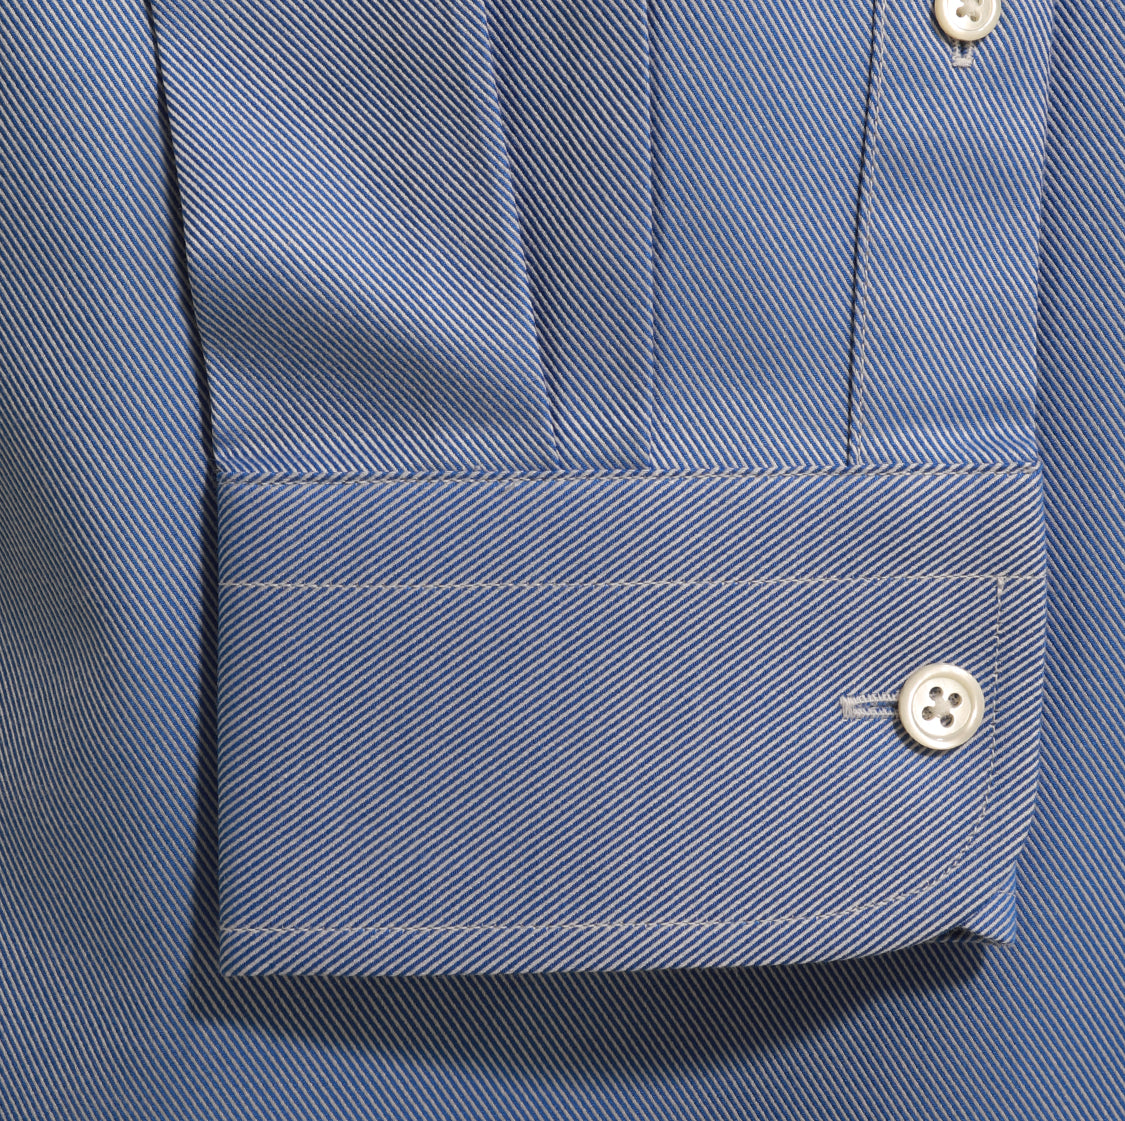 Alfred-Sung-MidBlue-Twill-Modern-Shirt-Monogram